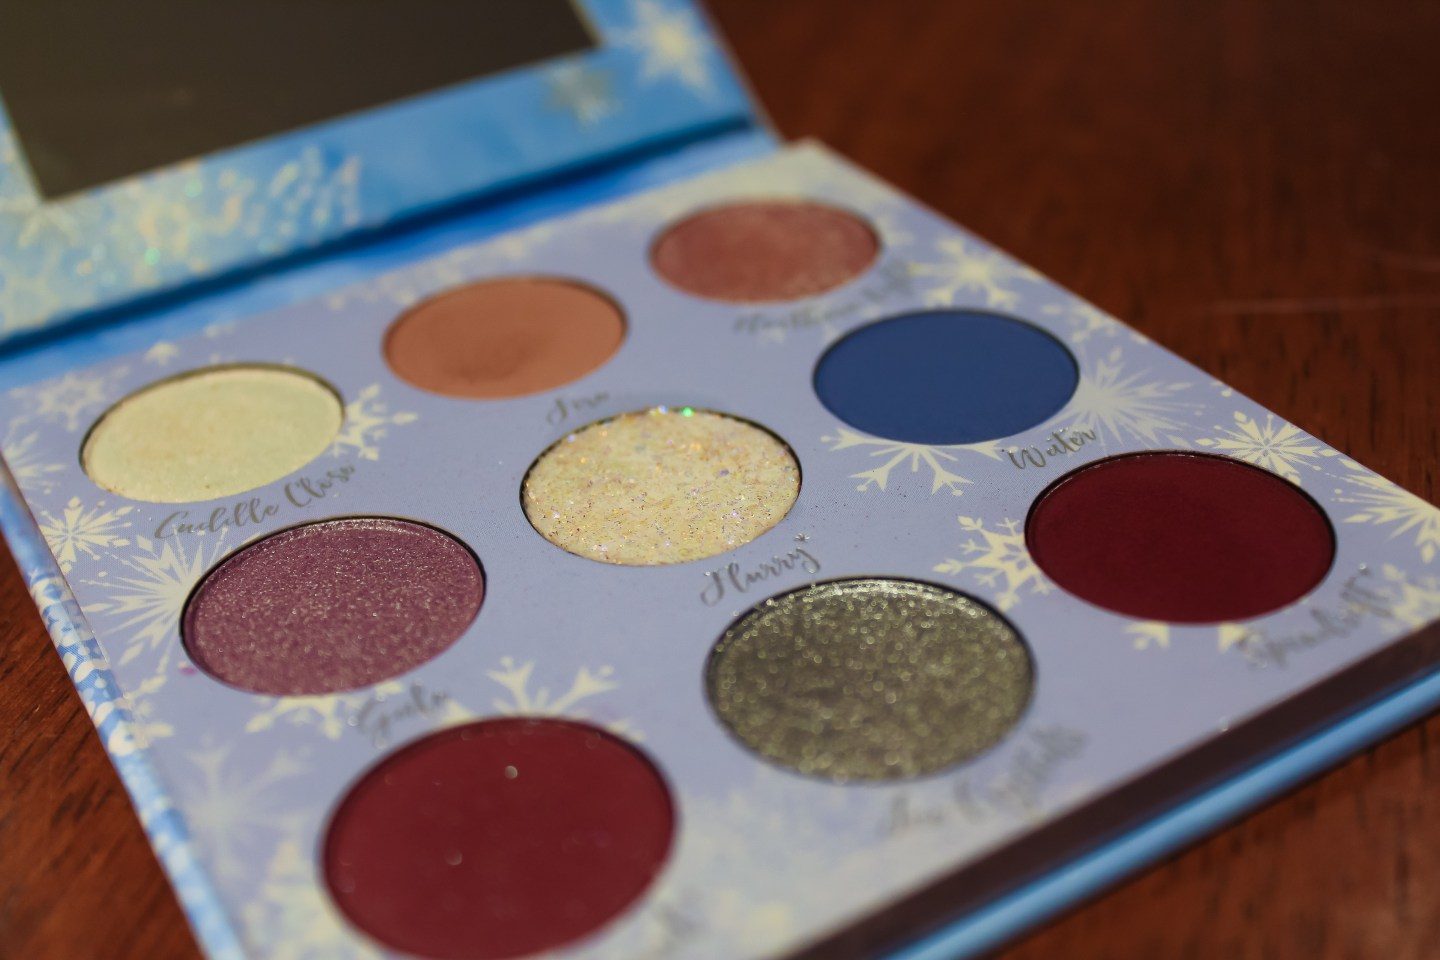 Are You the One I've Been Looking for? Overview of the ColourPop x Disney Frozen II Anna and Elsa Shadow Palettes 4